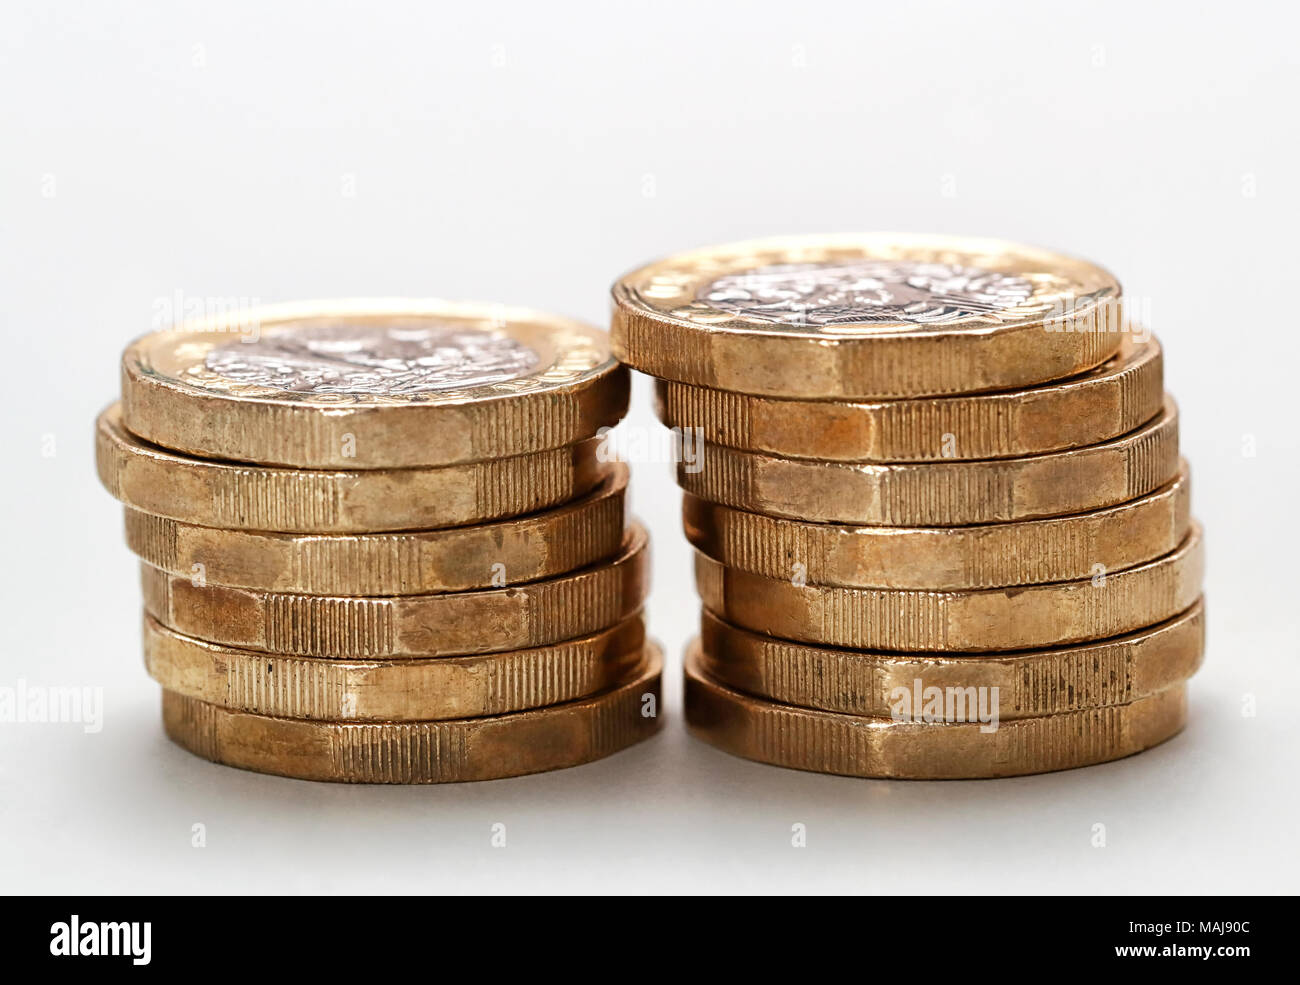 !3 One Pound Coins 6 coins in the left stack and 7 in the right hand stack set against a light coloured background - Stock Image